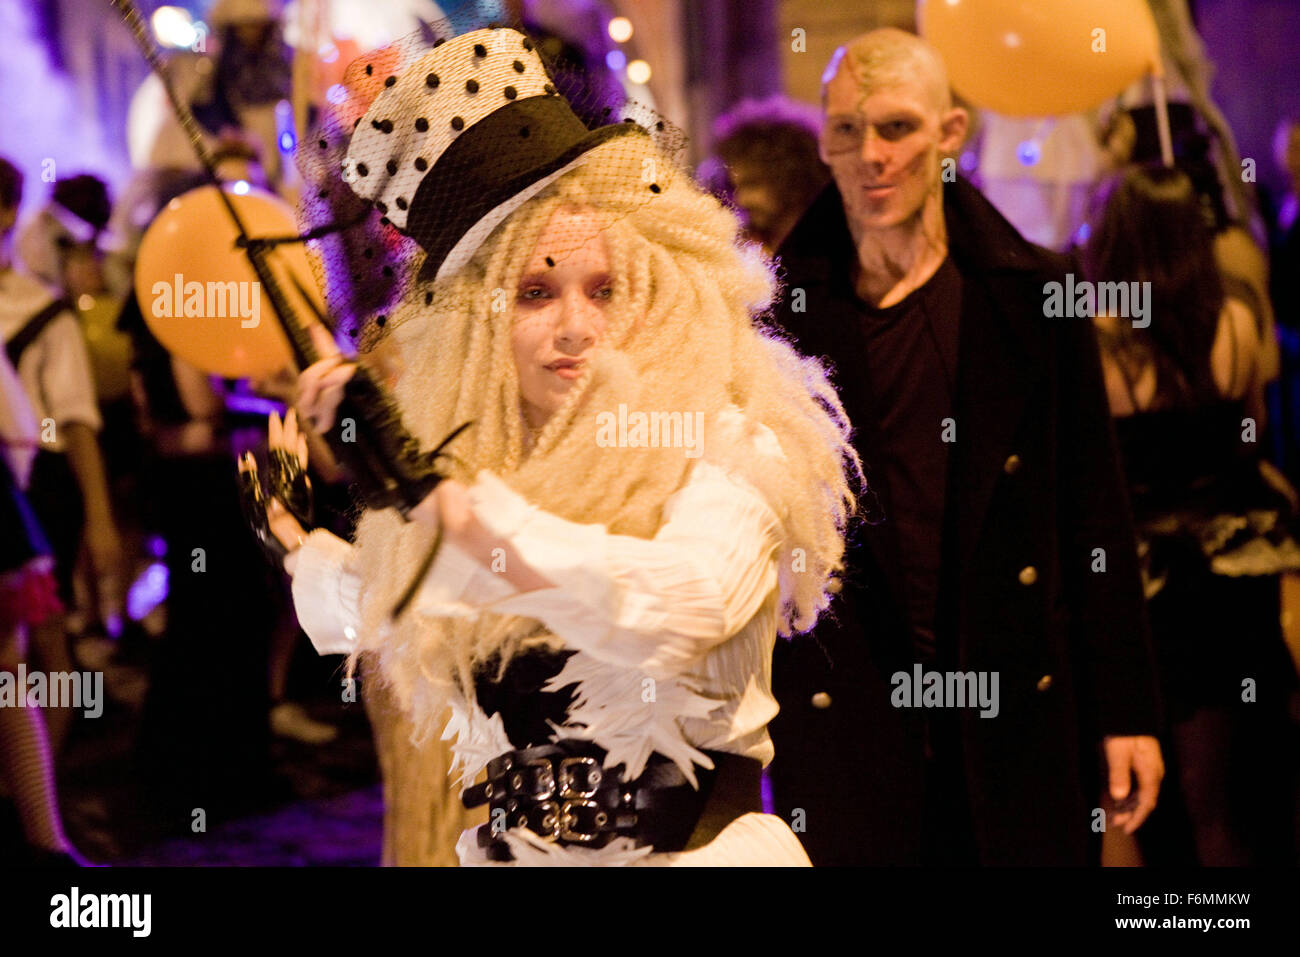 RELEASE DATE March 4 2011 MOVIE TITLE Beastly STUDIO CBS Films DIRECTOR  sc 1 st  Alamy & Mary Kate Olsen Stock Photos u0026 Mary Kate Olsen Stock Images - Alamy